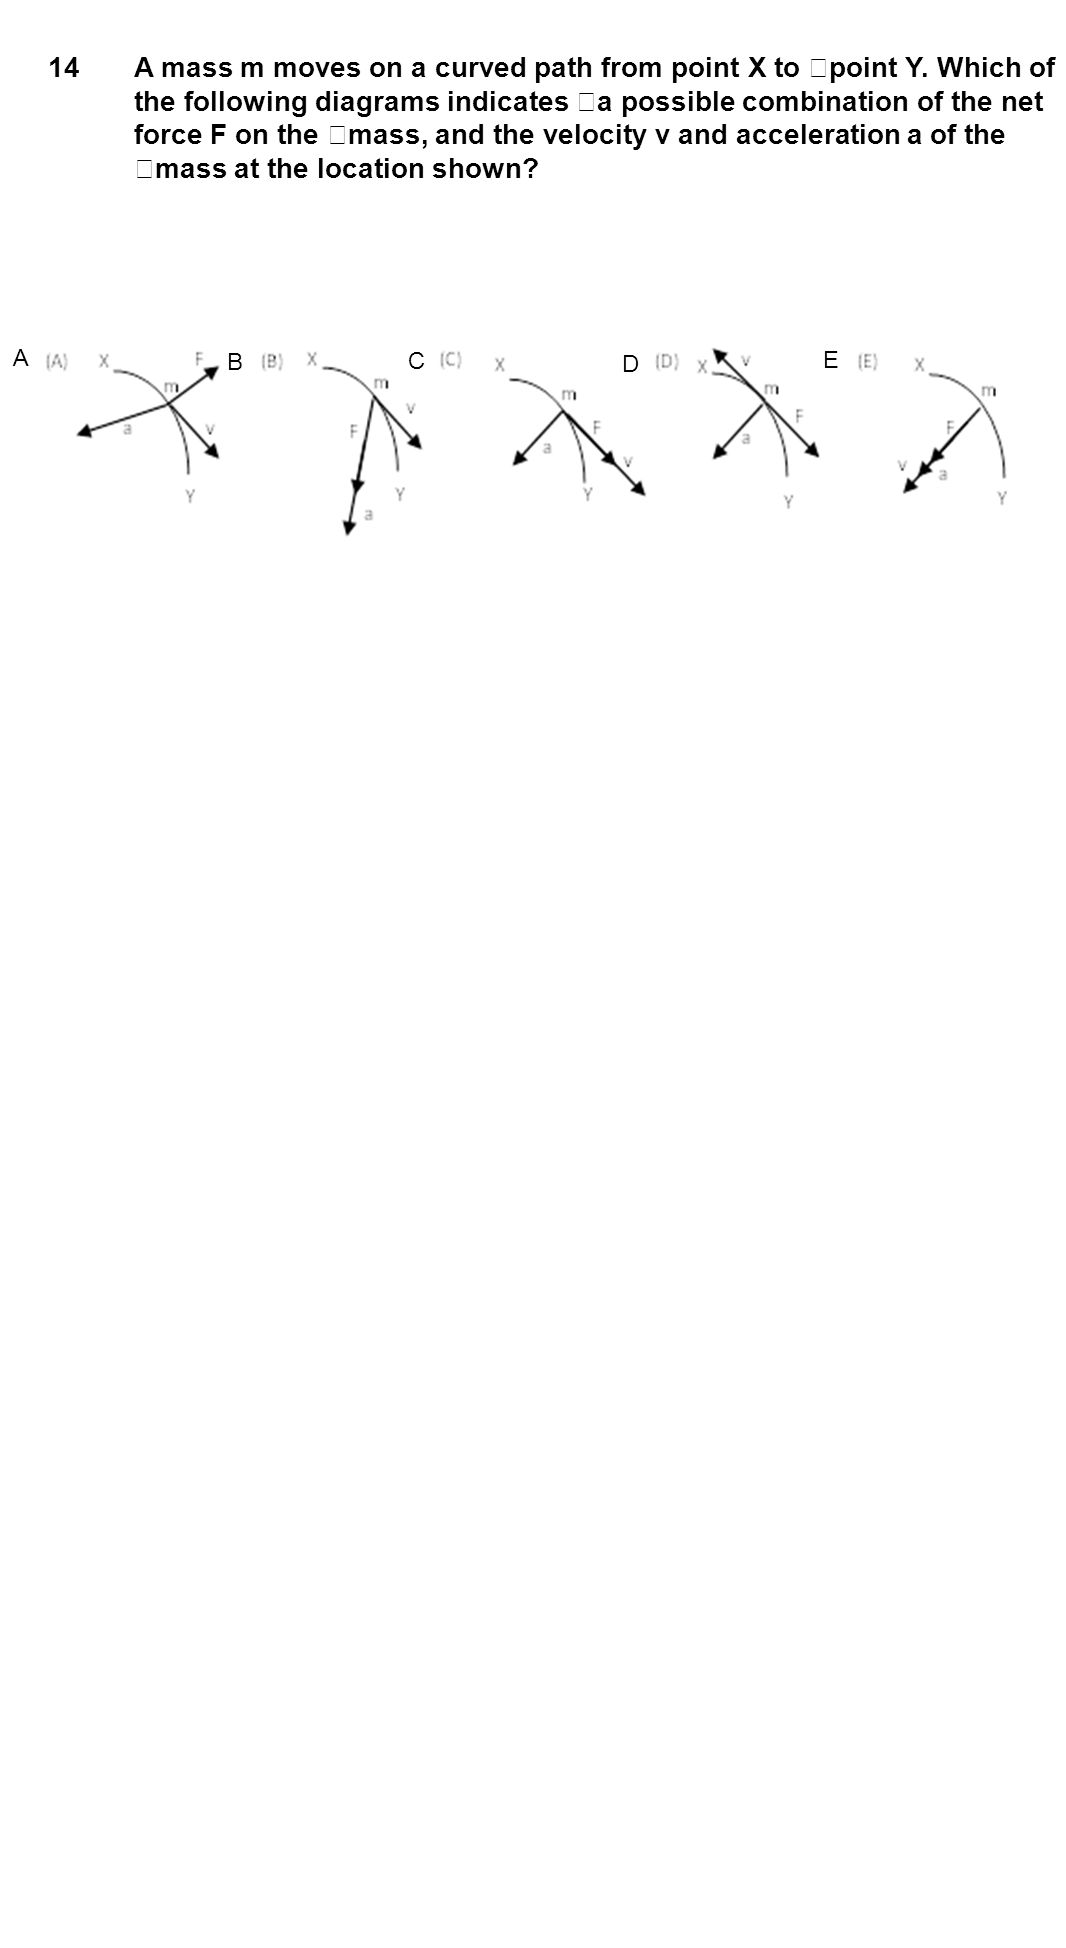 14 A mass m moves on a curved path from point X to point Y. Which of the following diagrams indicates a possible combination of the net force F on the